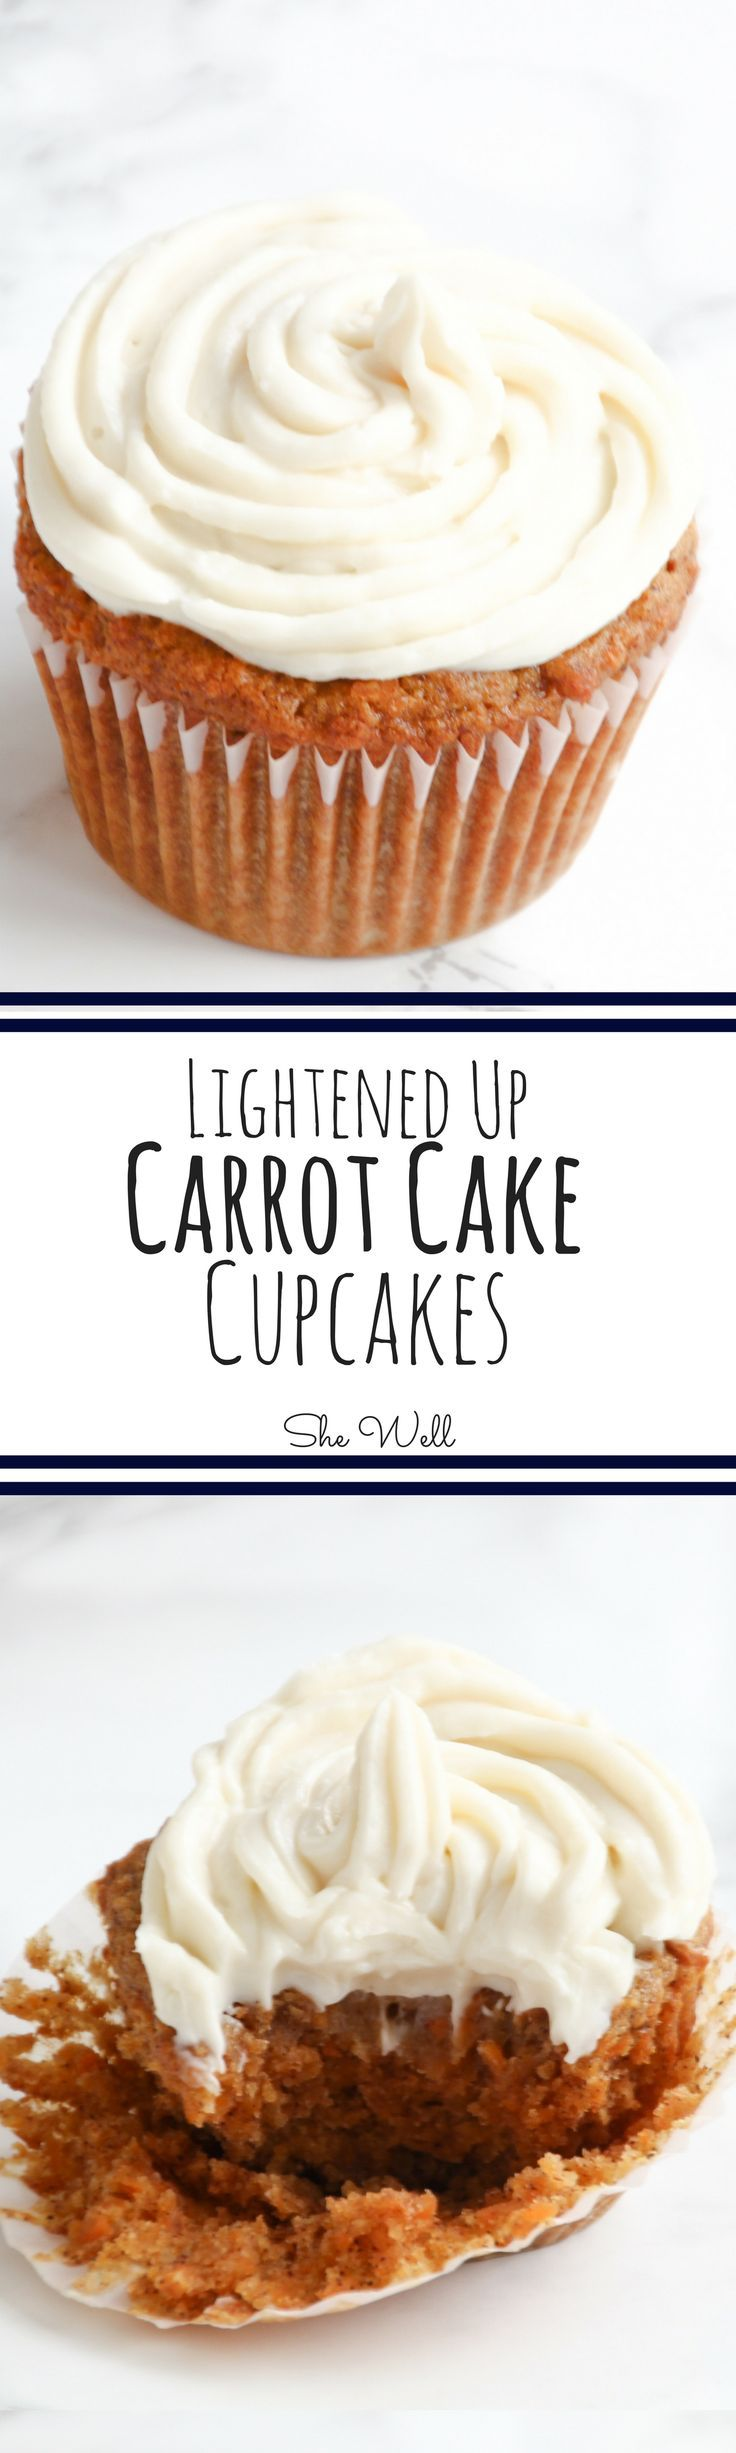 25 Best Ideas About Carrot Cake Cupcakes On Pinterest